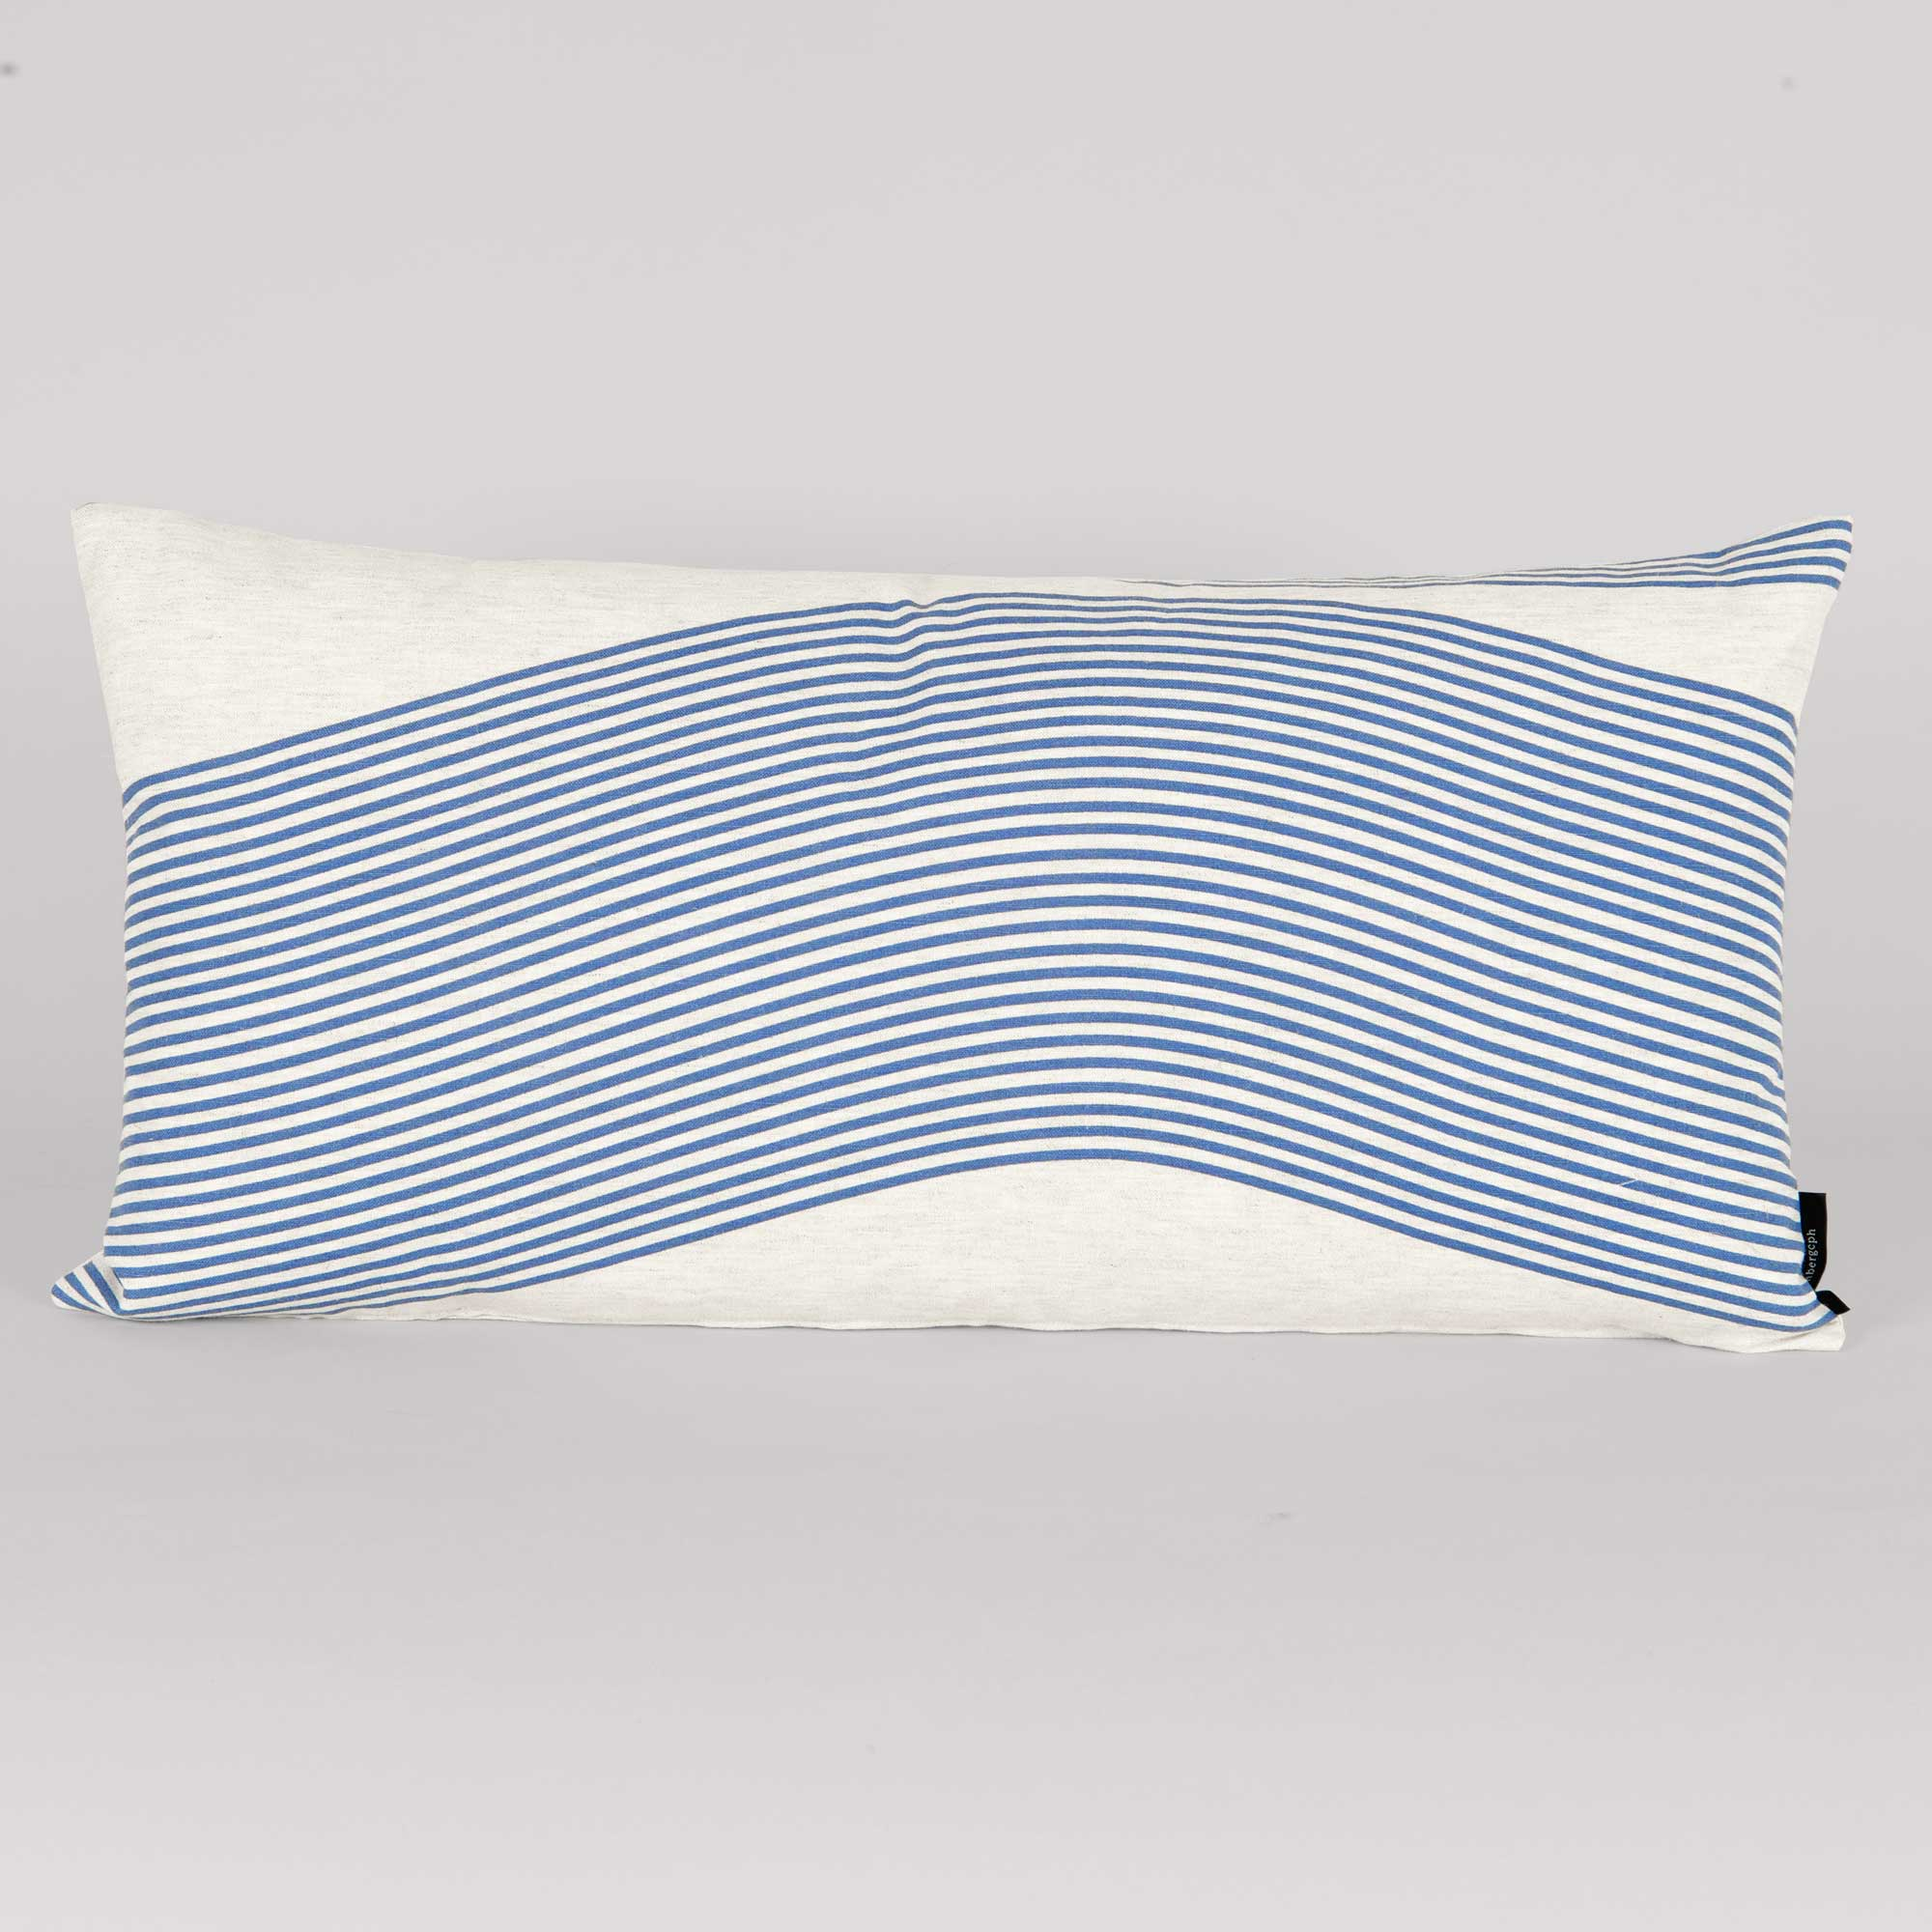 Rectangular cushion in River pattern, design Anne Rosenberg, RosenbergCph